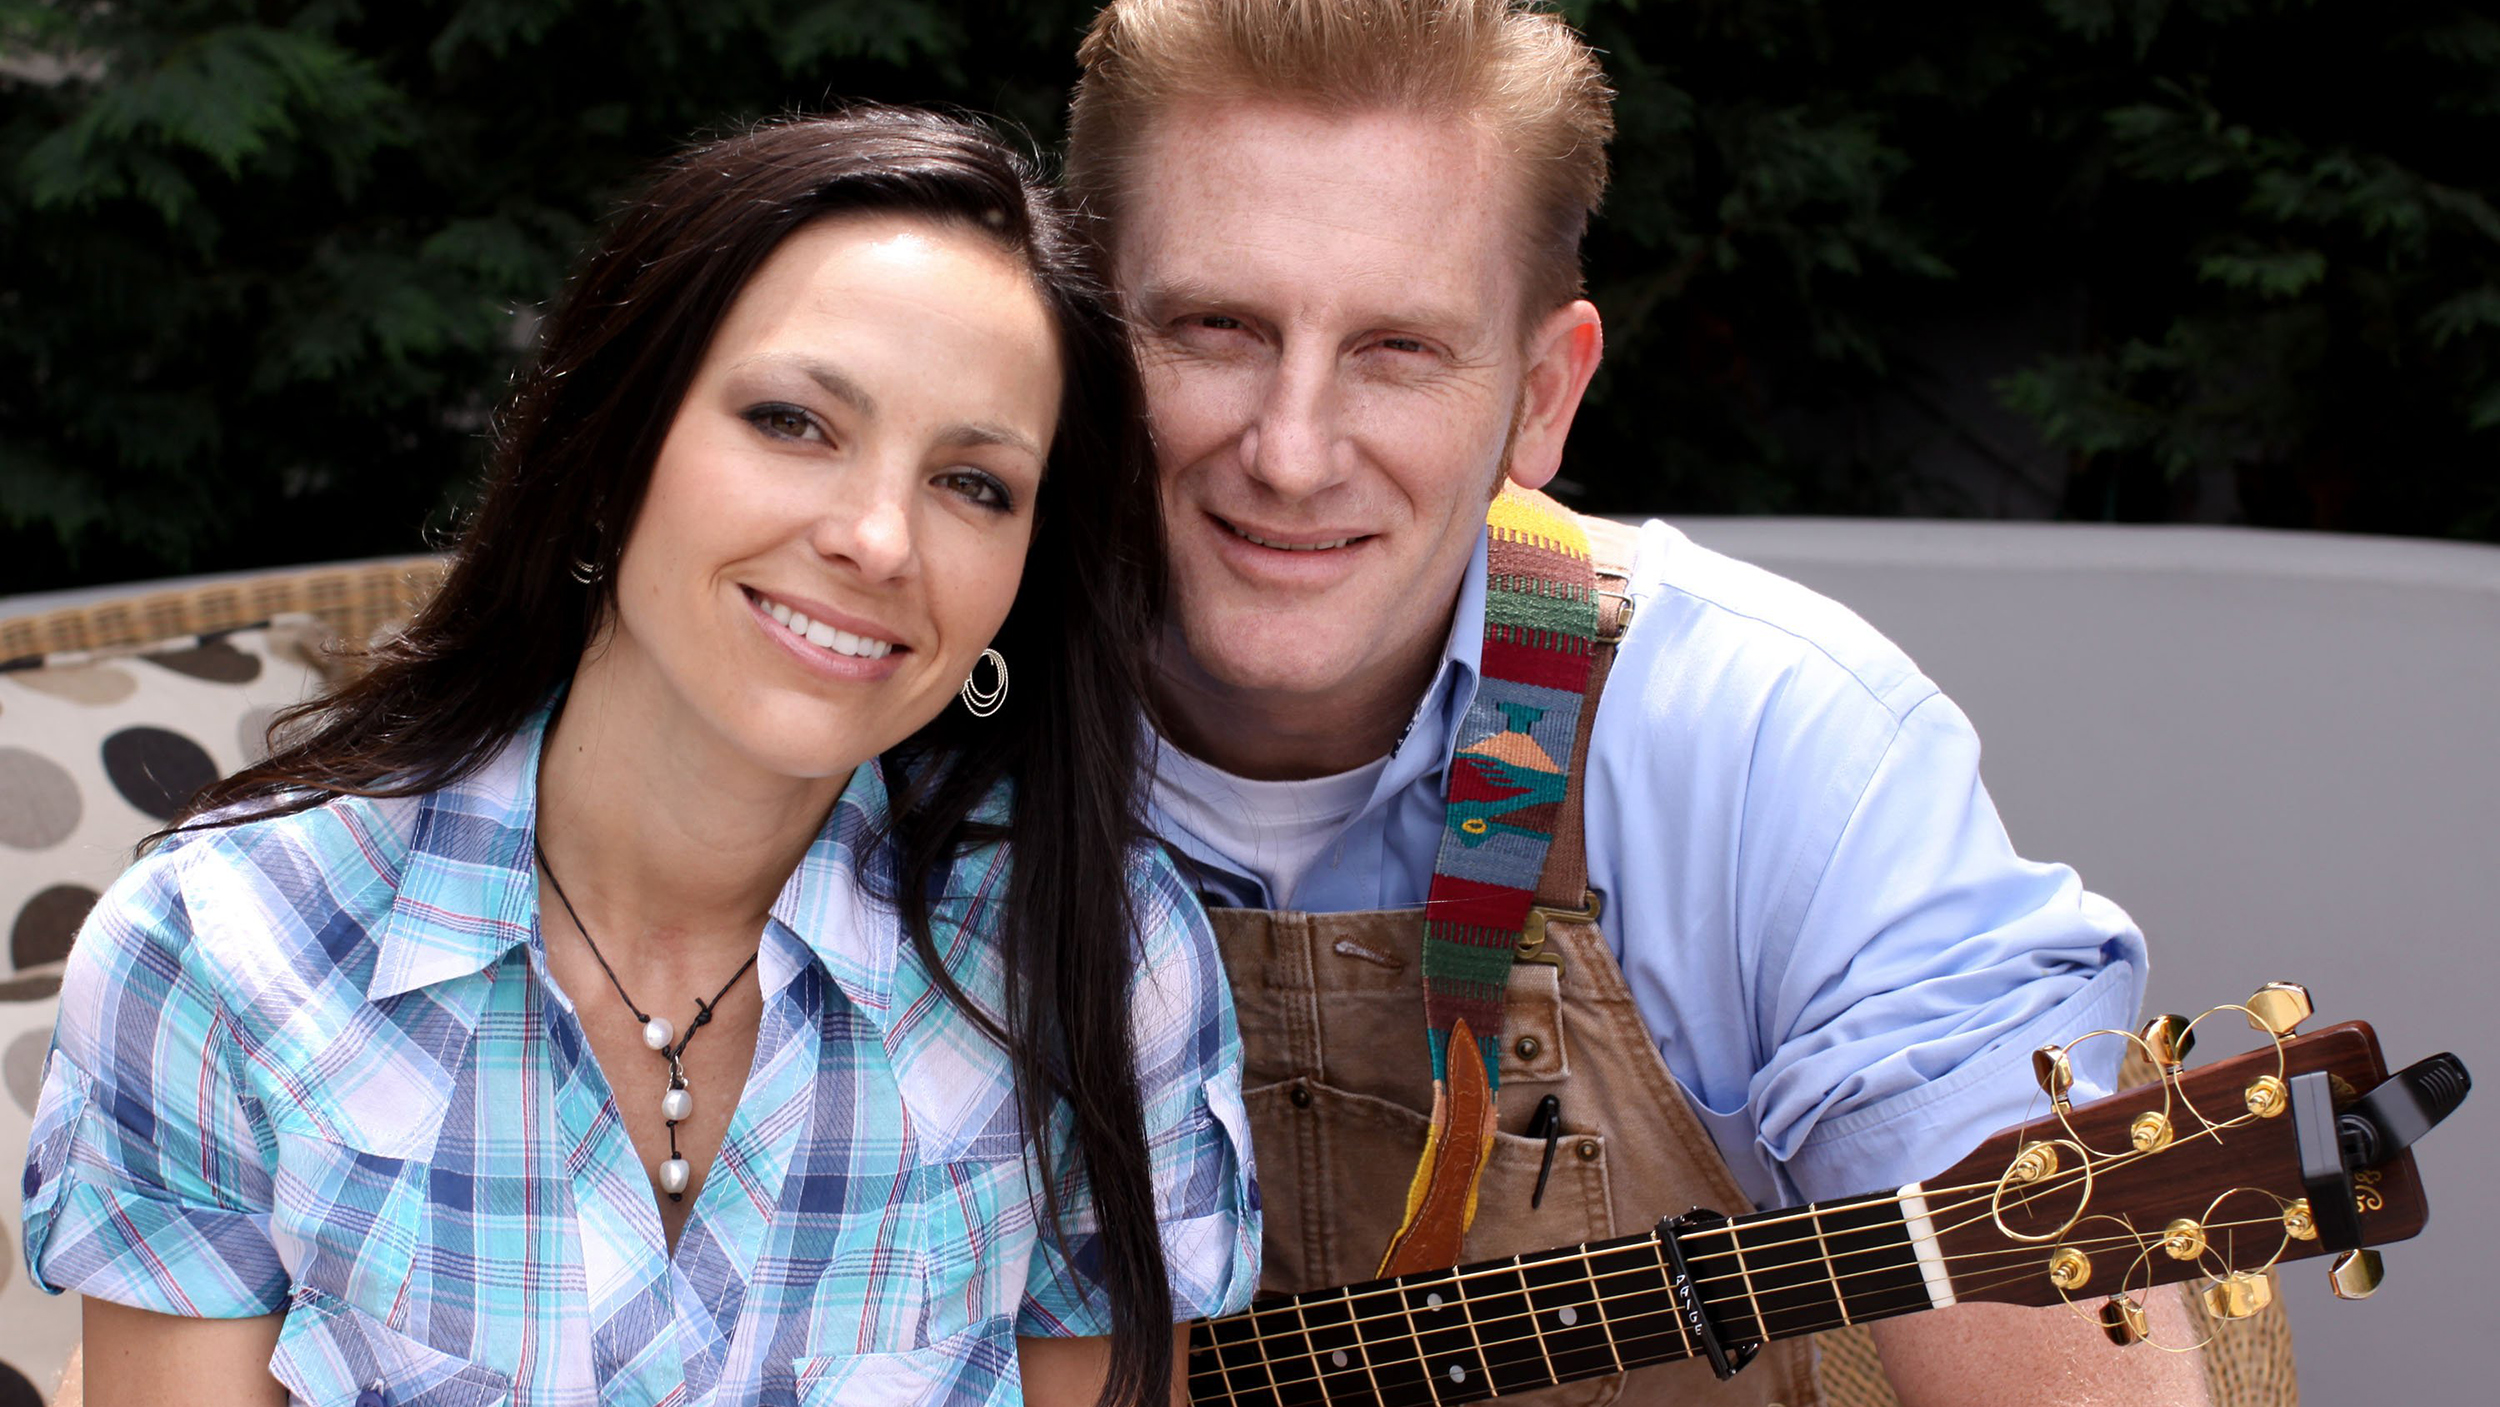 Joey Feek smiles while playing with daughter Indiana in uplifting photo